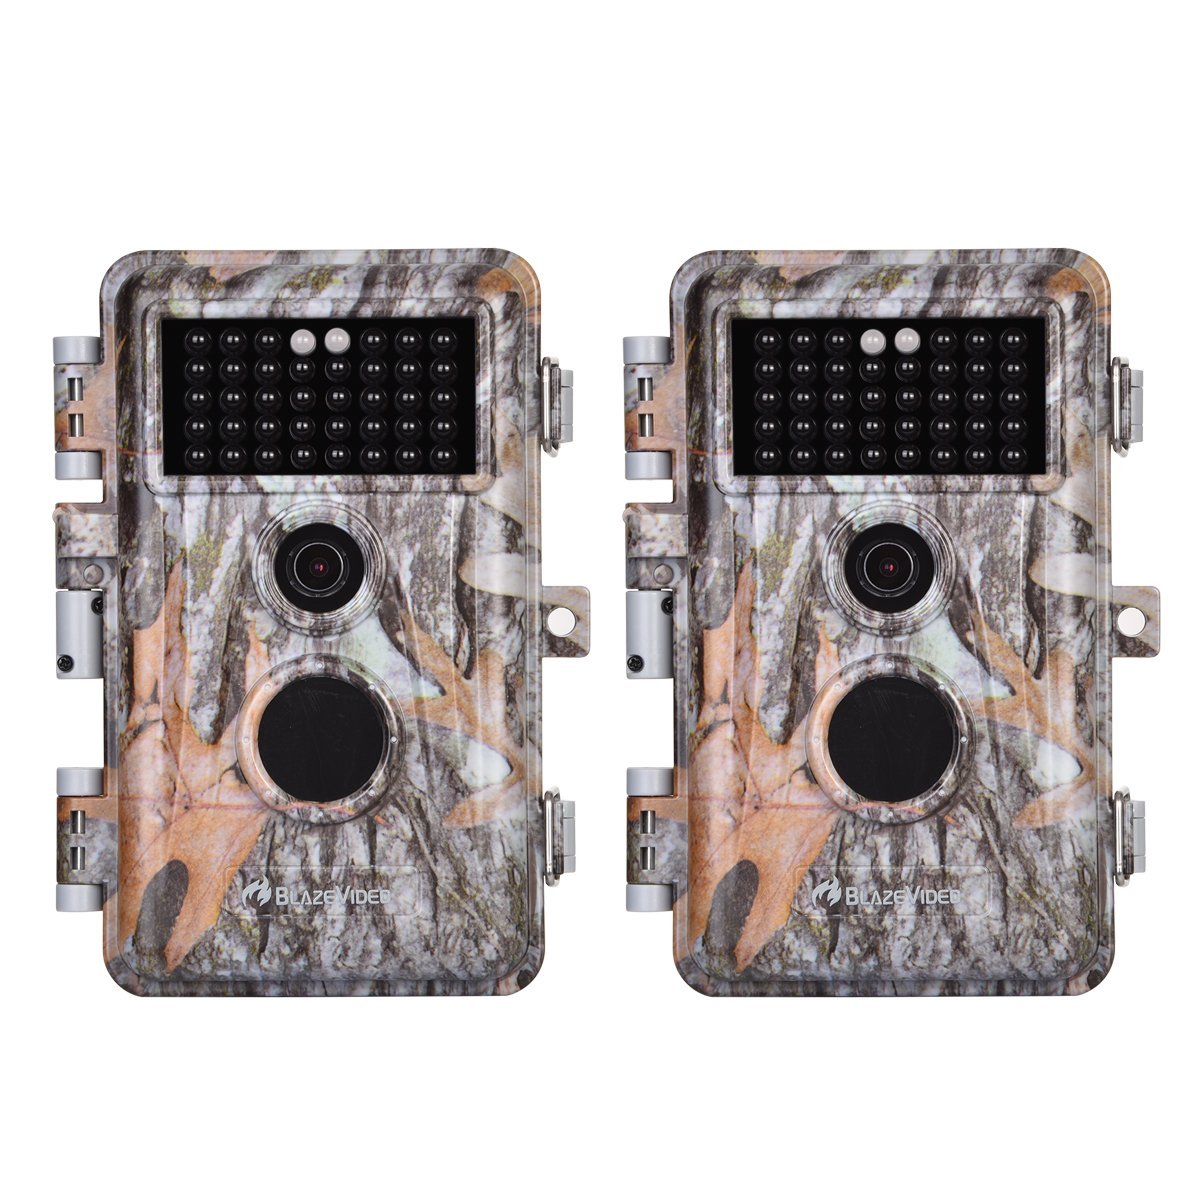 [2019 Upgraded]2-Pack Game Trail & Deer Hunting Cameras 16MP 1080P No Glow Wildlife Cams with Night Vision Motion Activated Waterproof & Password Protected Photo & Video Model Time Lapse & Time Stamp by BlazeVideo